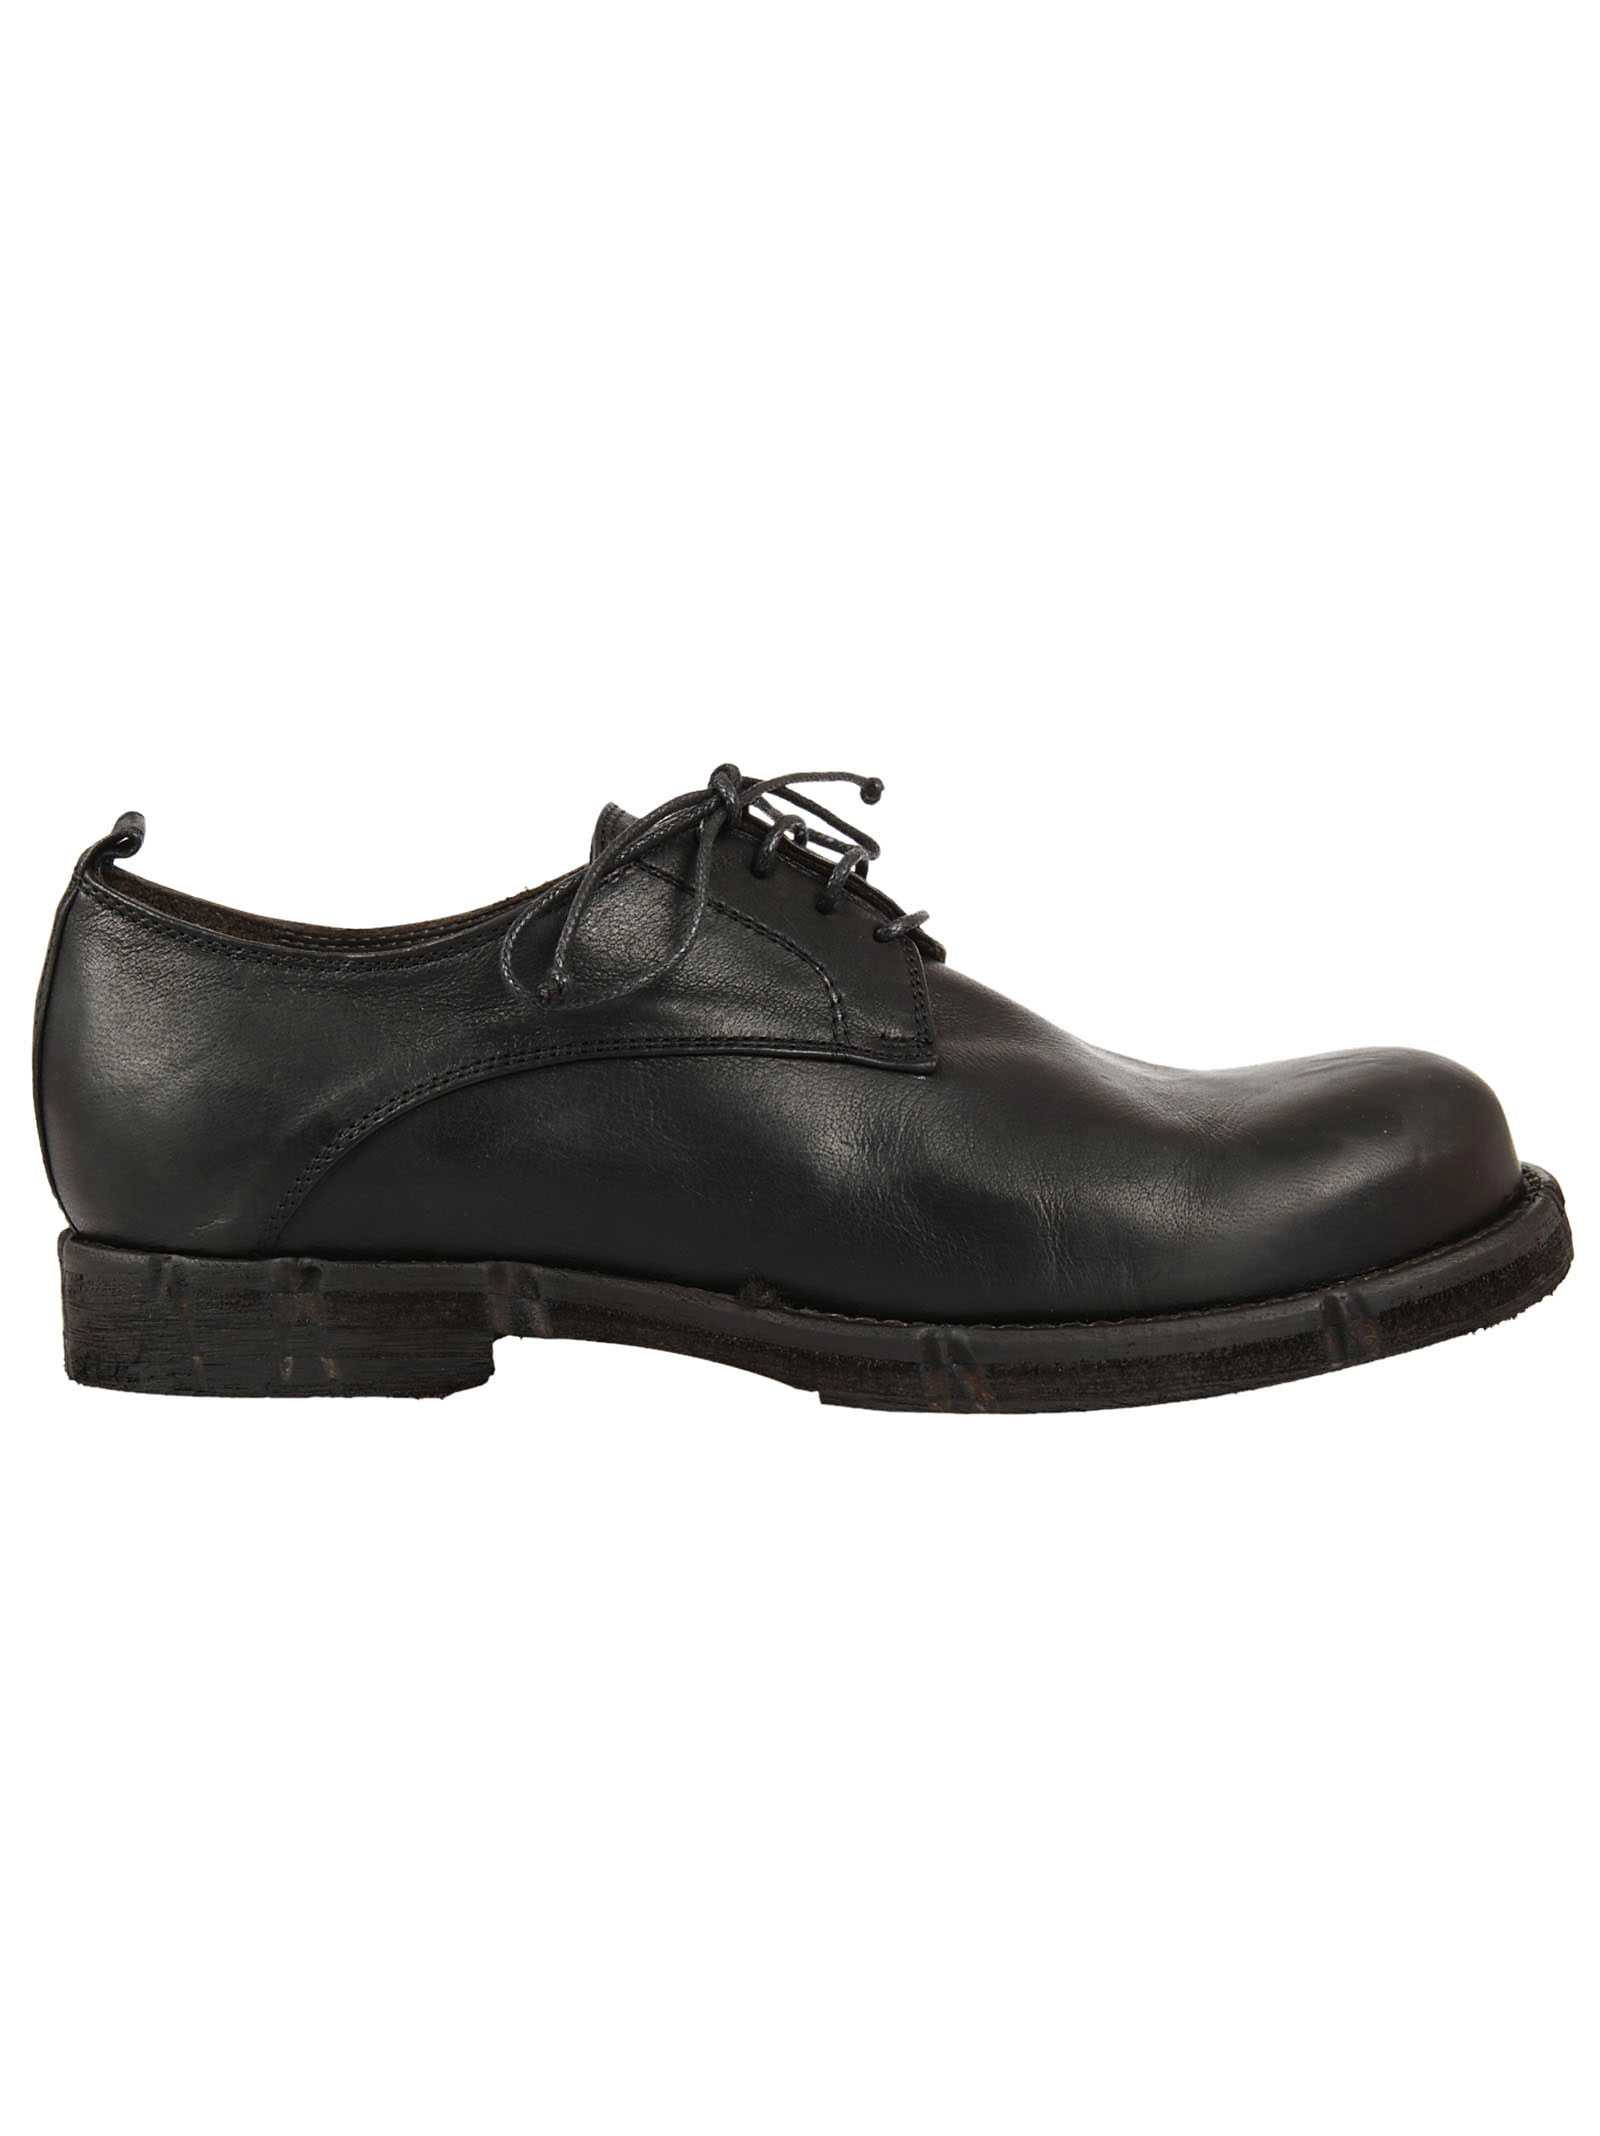 luca valentini Luca Valentini Laced Derby Shoes